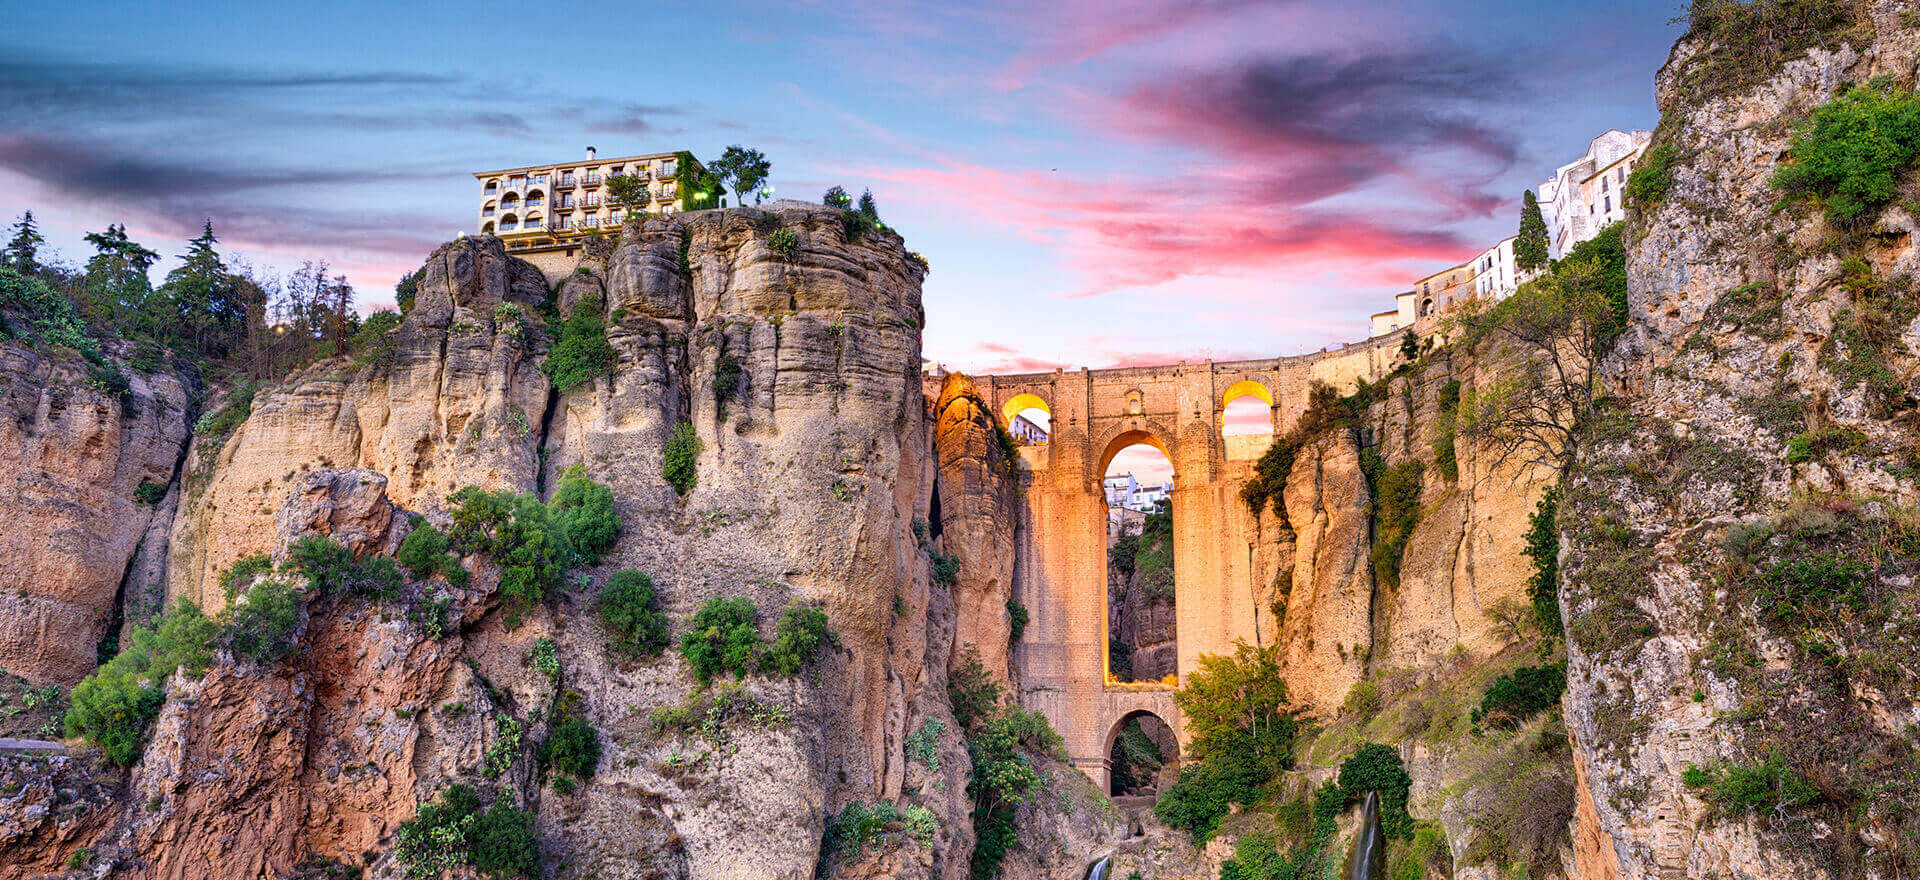 Ronda, as seen in Classical Spain tour